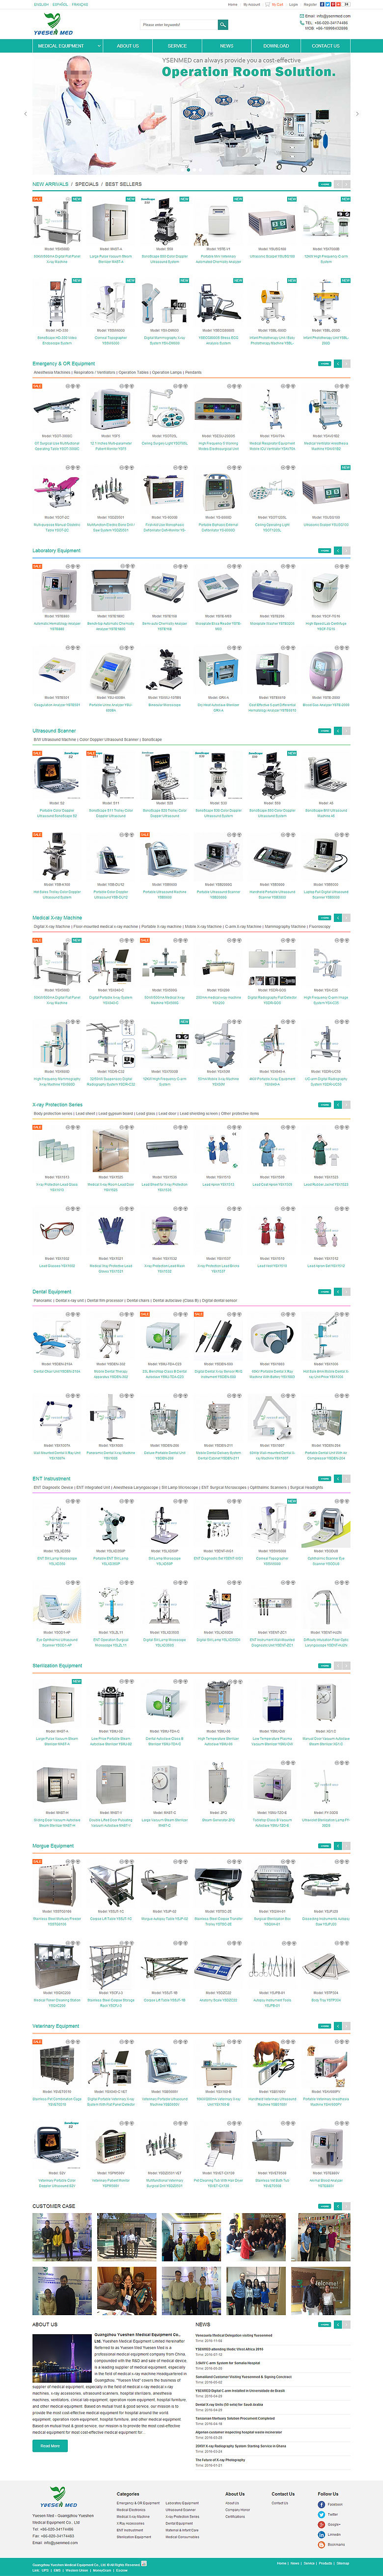 Guangzhou Yueshen Medical Equipment Co., Ltd